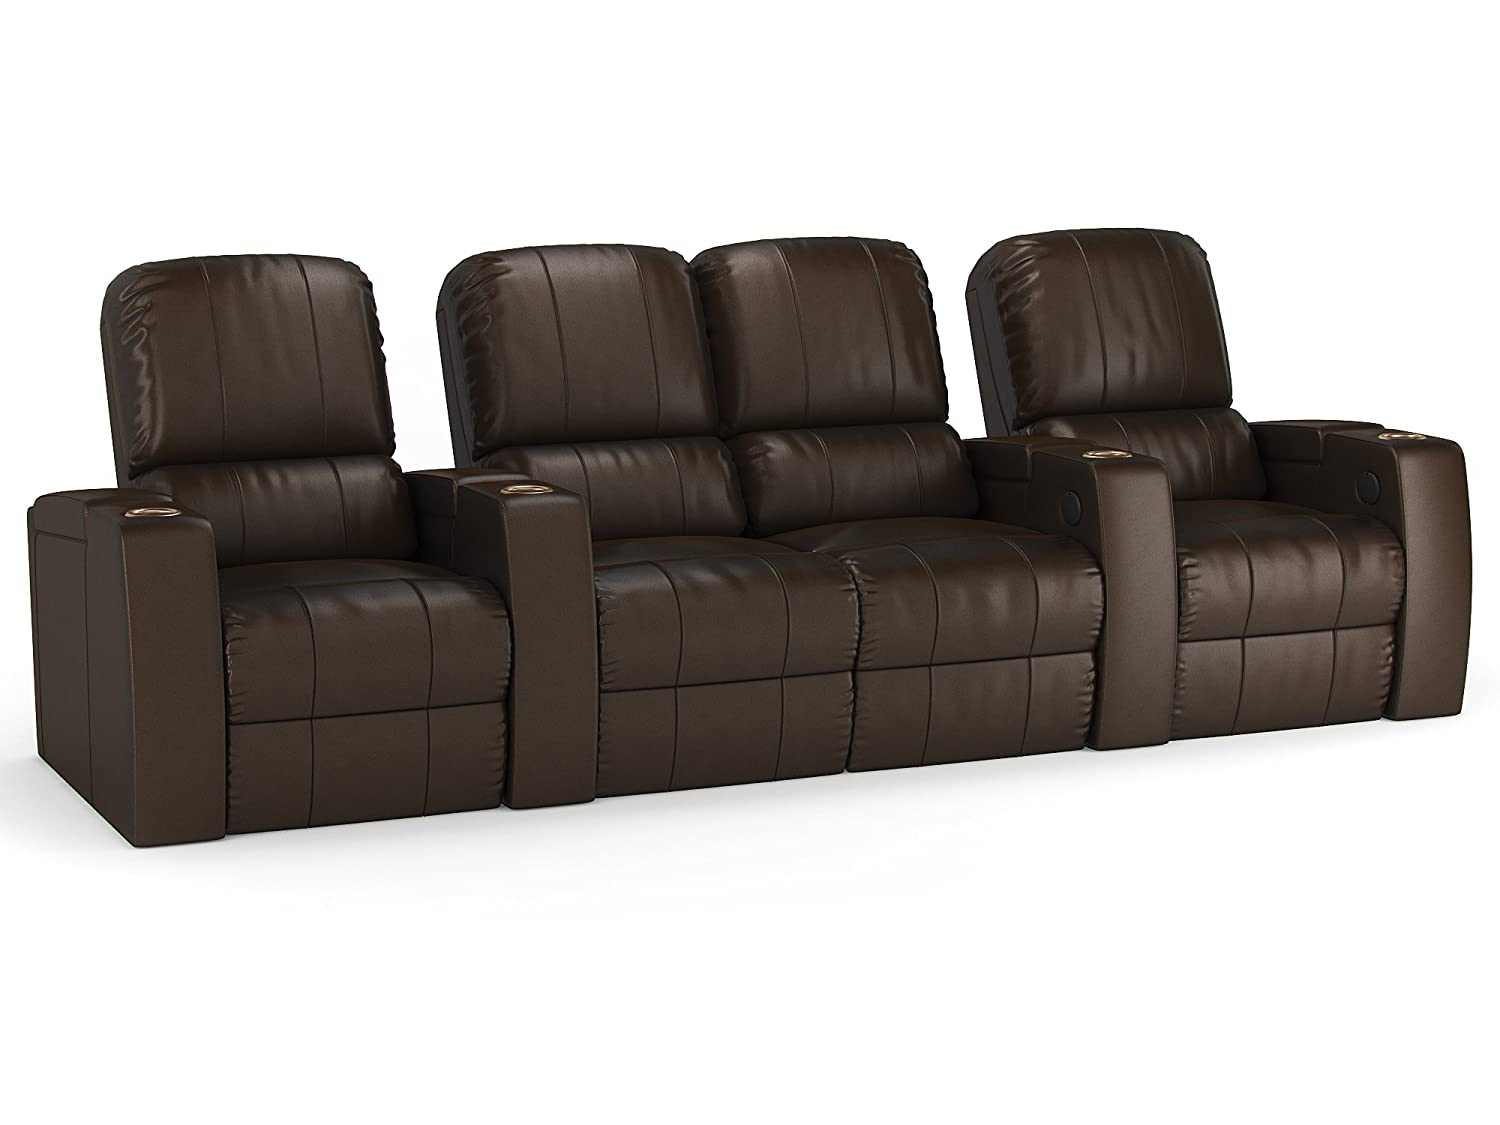 Octane Storm XL850 Row of 4 Seats with Middle Loveseat - Straight Row in Brown Leather with Power Recline